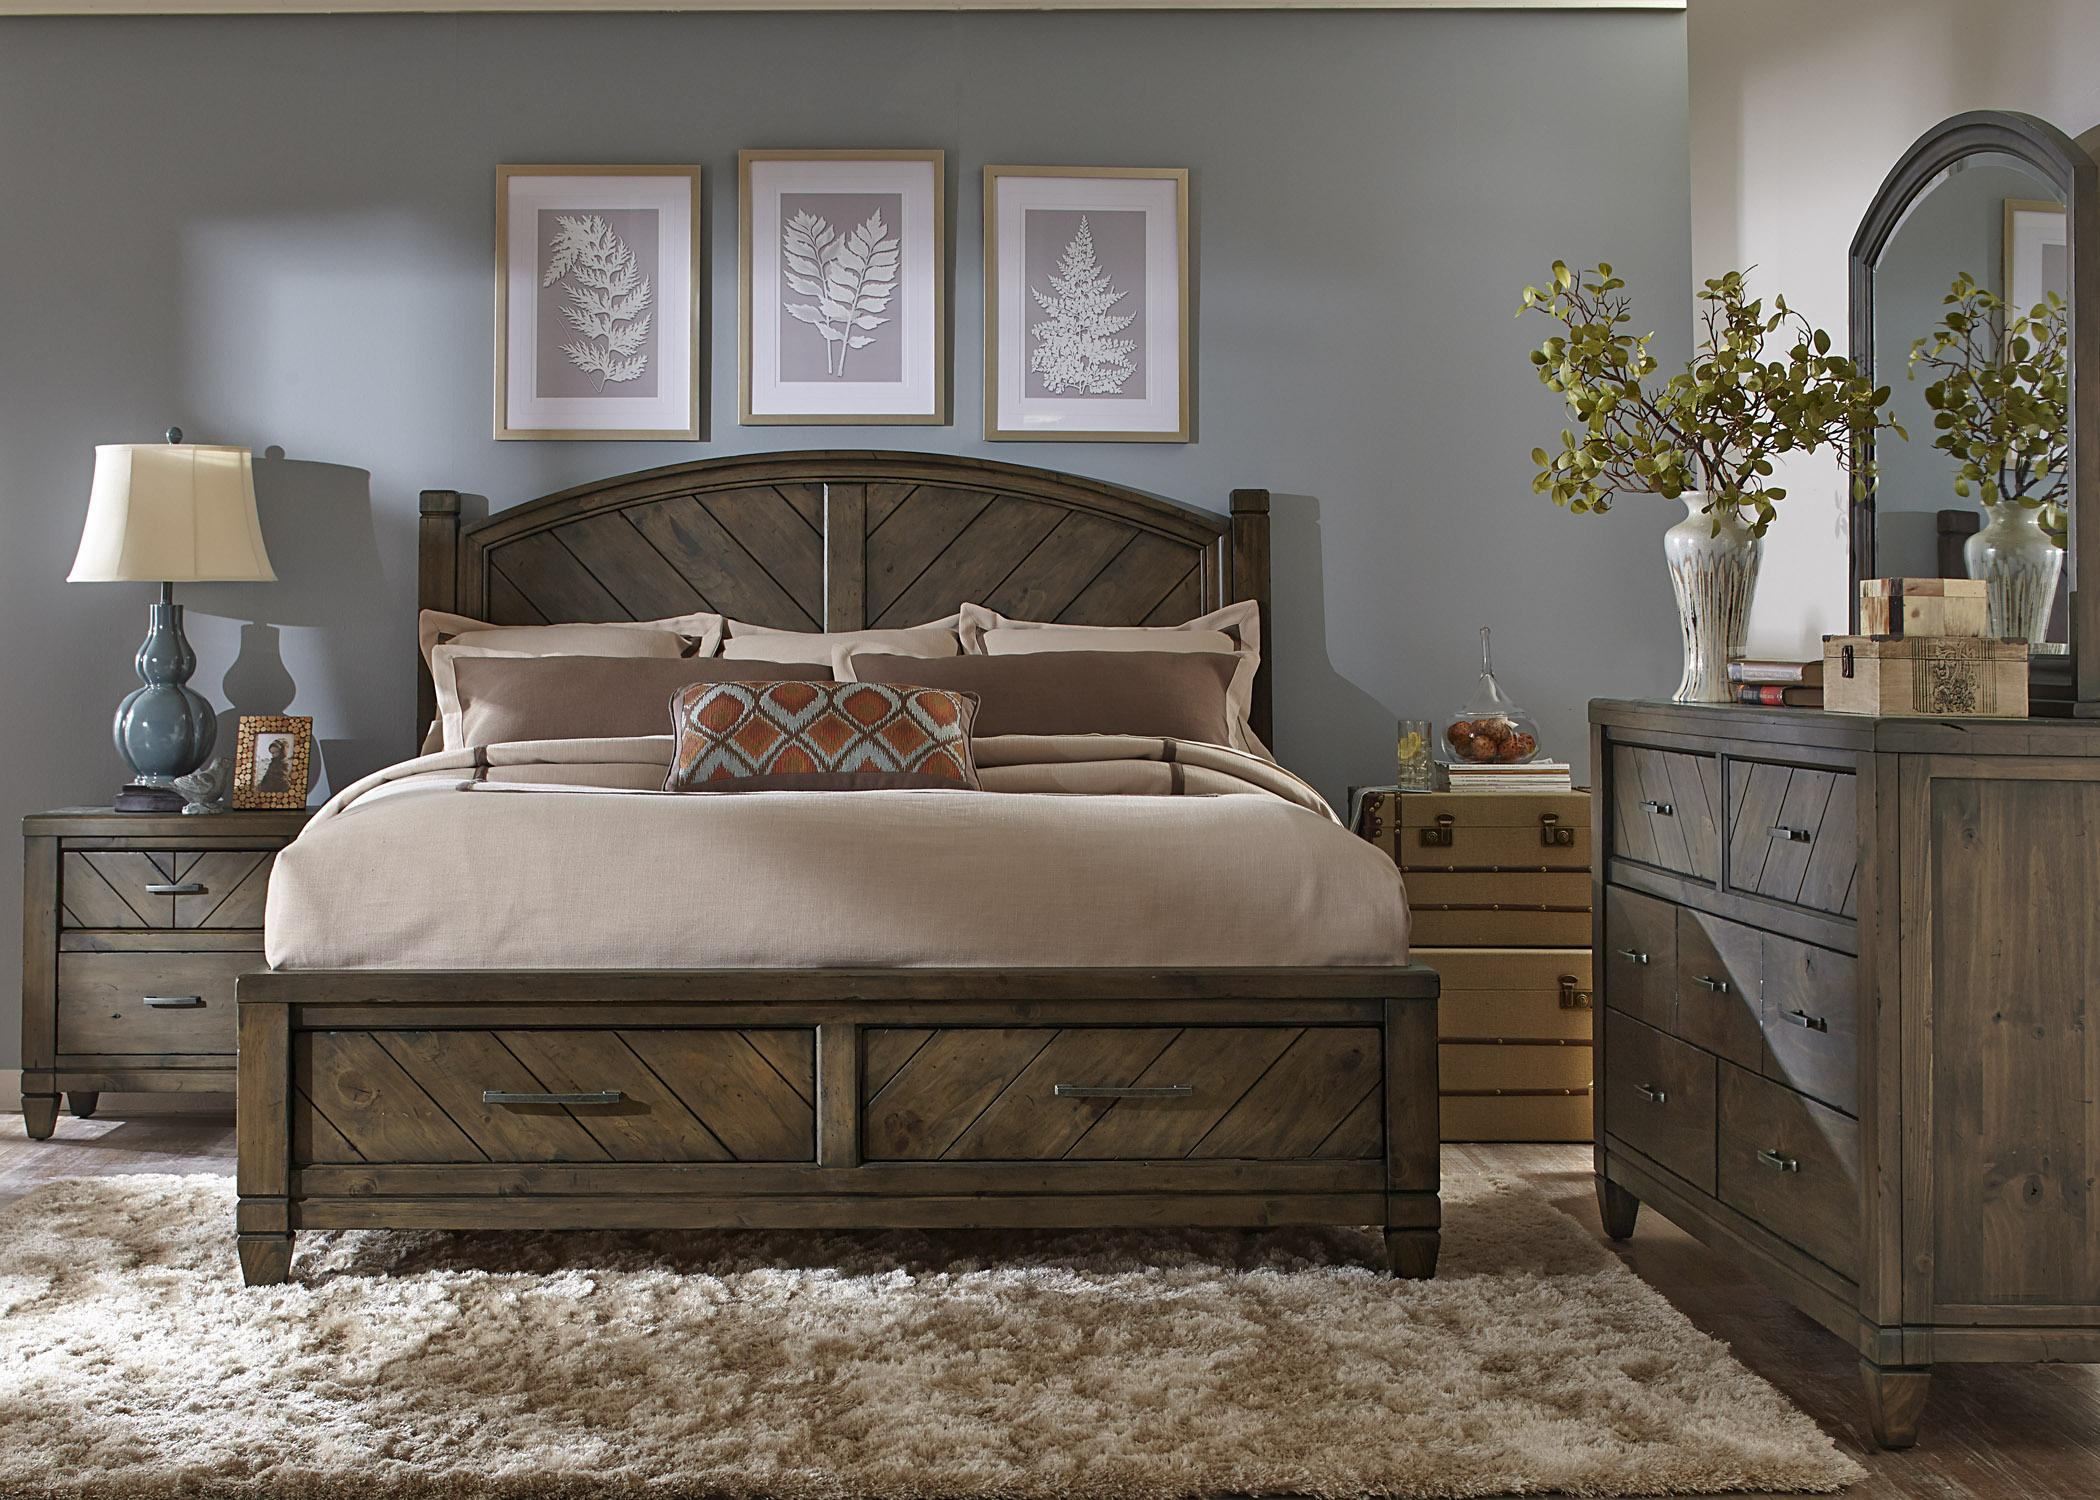 Modern Country Liberty King Bed